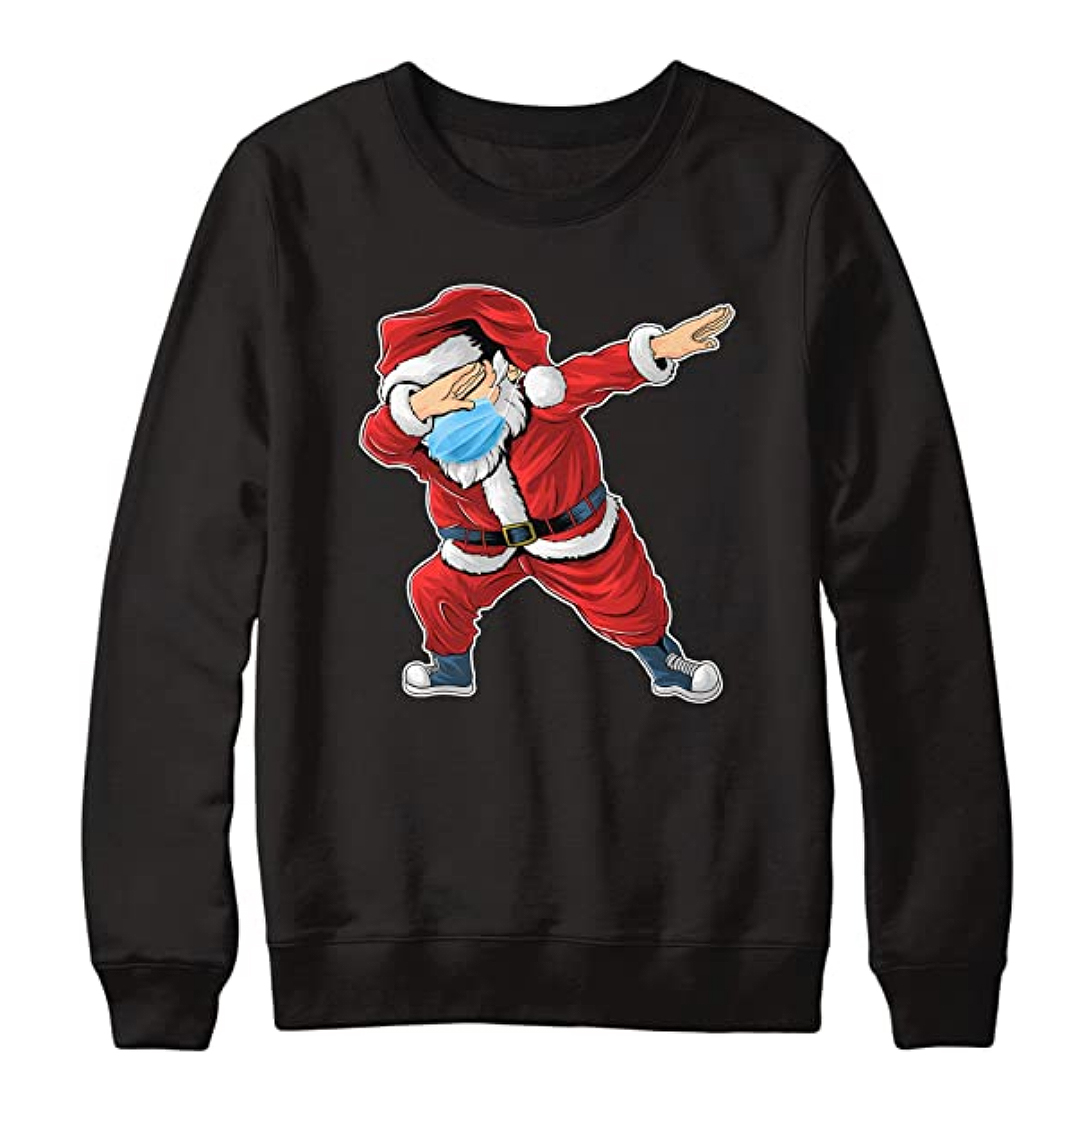 Best Christmas Jumpers for 2020. Covid Christmas Jumpers 2020. Christmas Jumpers for Lockdown 2020. Gifts for Him 2020. Best Festive Jumpers 2020. Mens Christmas Jumpers 2020. Funny Christmas Jumpers for 2020. Fashionable Christmas Jumpers 2020. Gifts for Boyfriend 2020. Gifts for Dad 2020. New Christmas Jumpers 2020. Christmas Sweaters 2020. Christmas Jumper Day Jumpers 2020